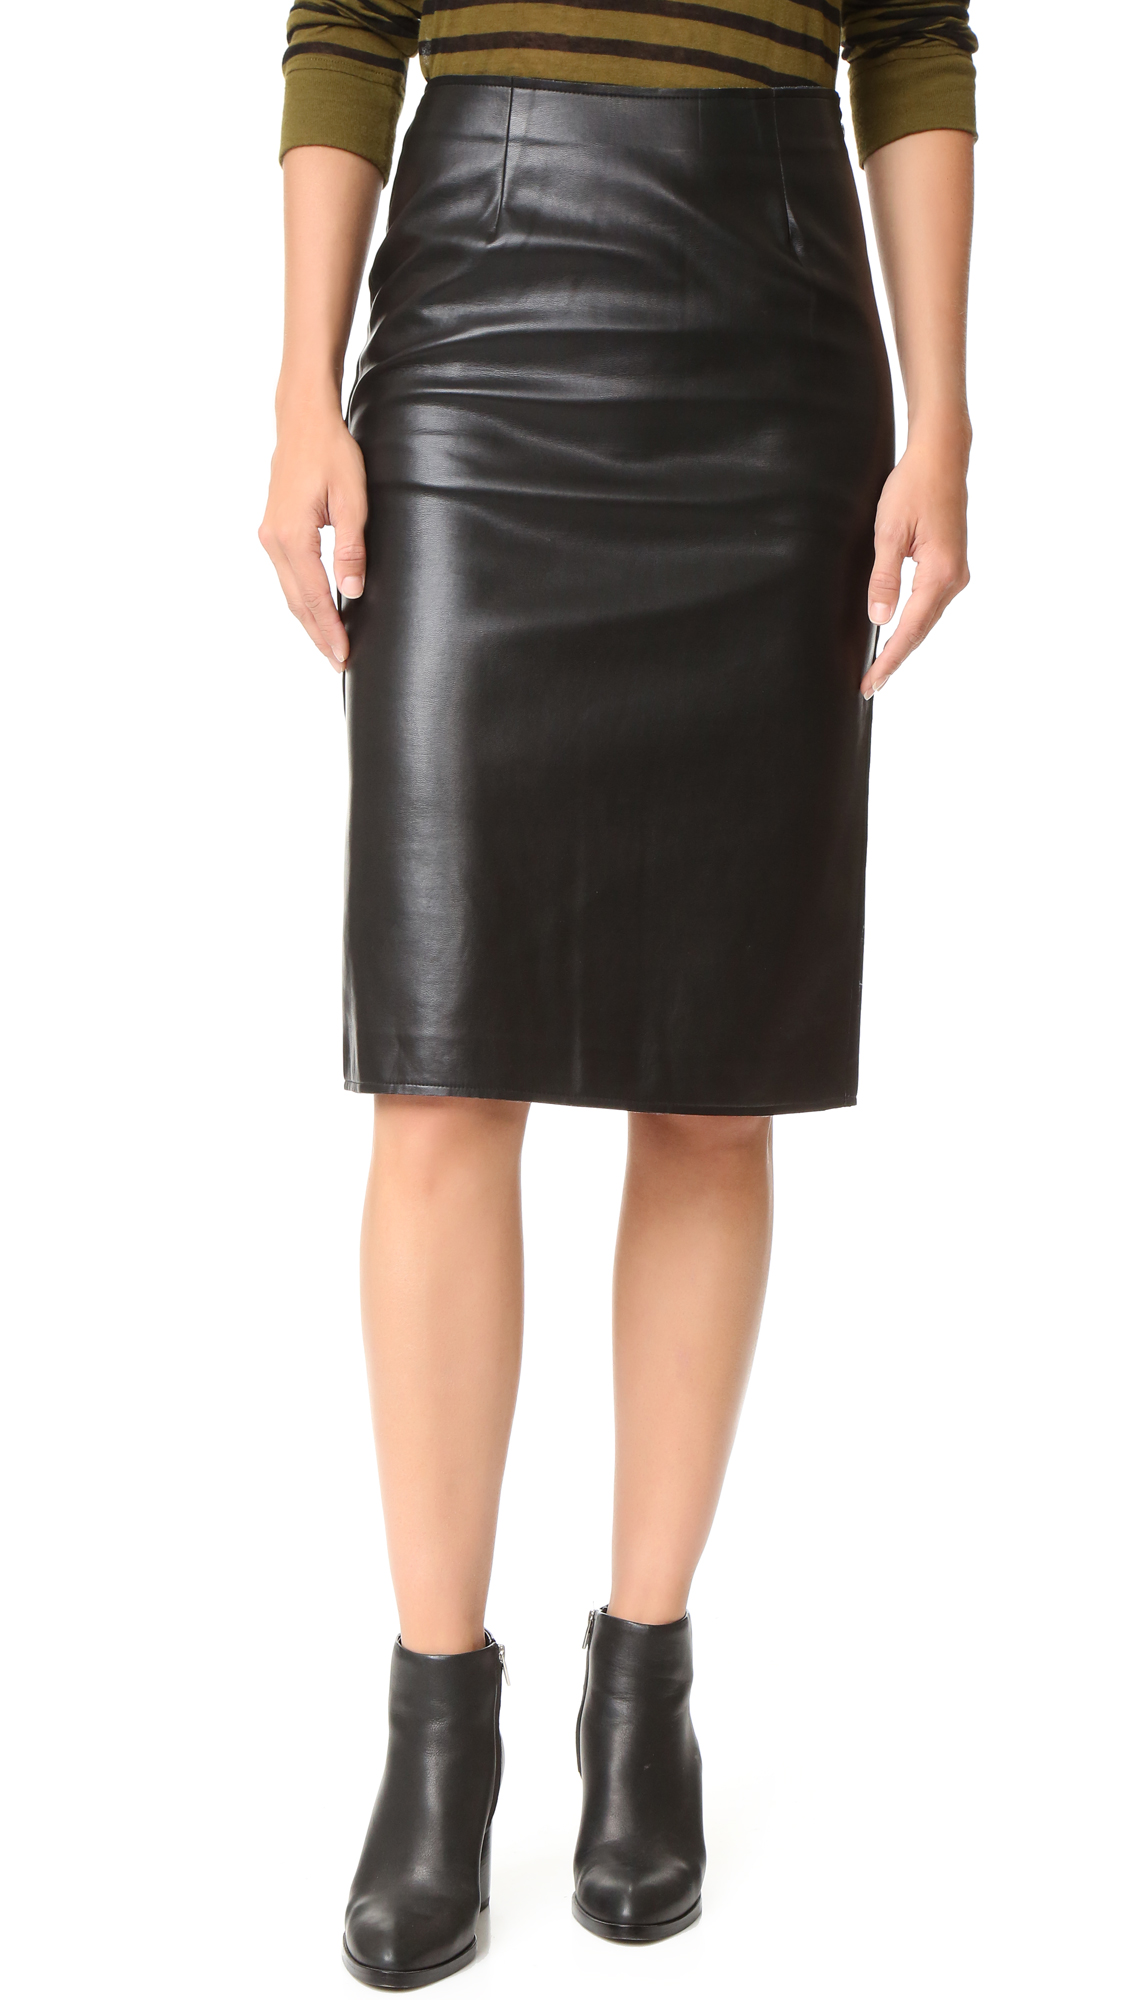 A J.O.A. skirt made from slick faux leather. Back slit. Side zip. Lined. Fabric: Faux leather. Shell: 100% PVC. Lining: 100% polyester. Dry clean. Imported, China. Measurements Length: 26in / 66cm Measurements from size S. Available sizes: